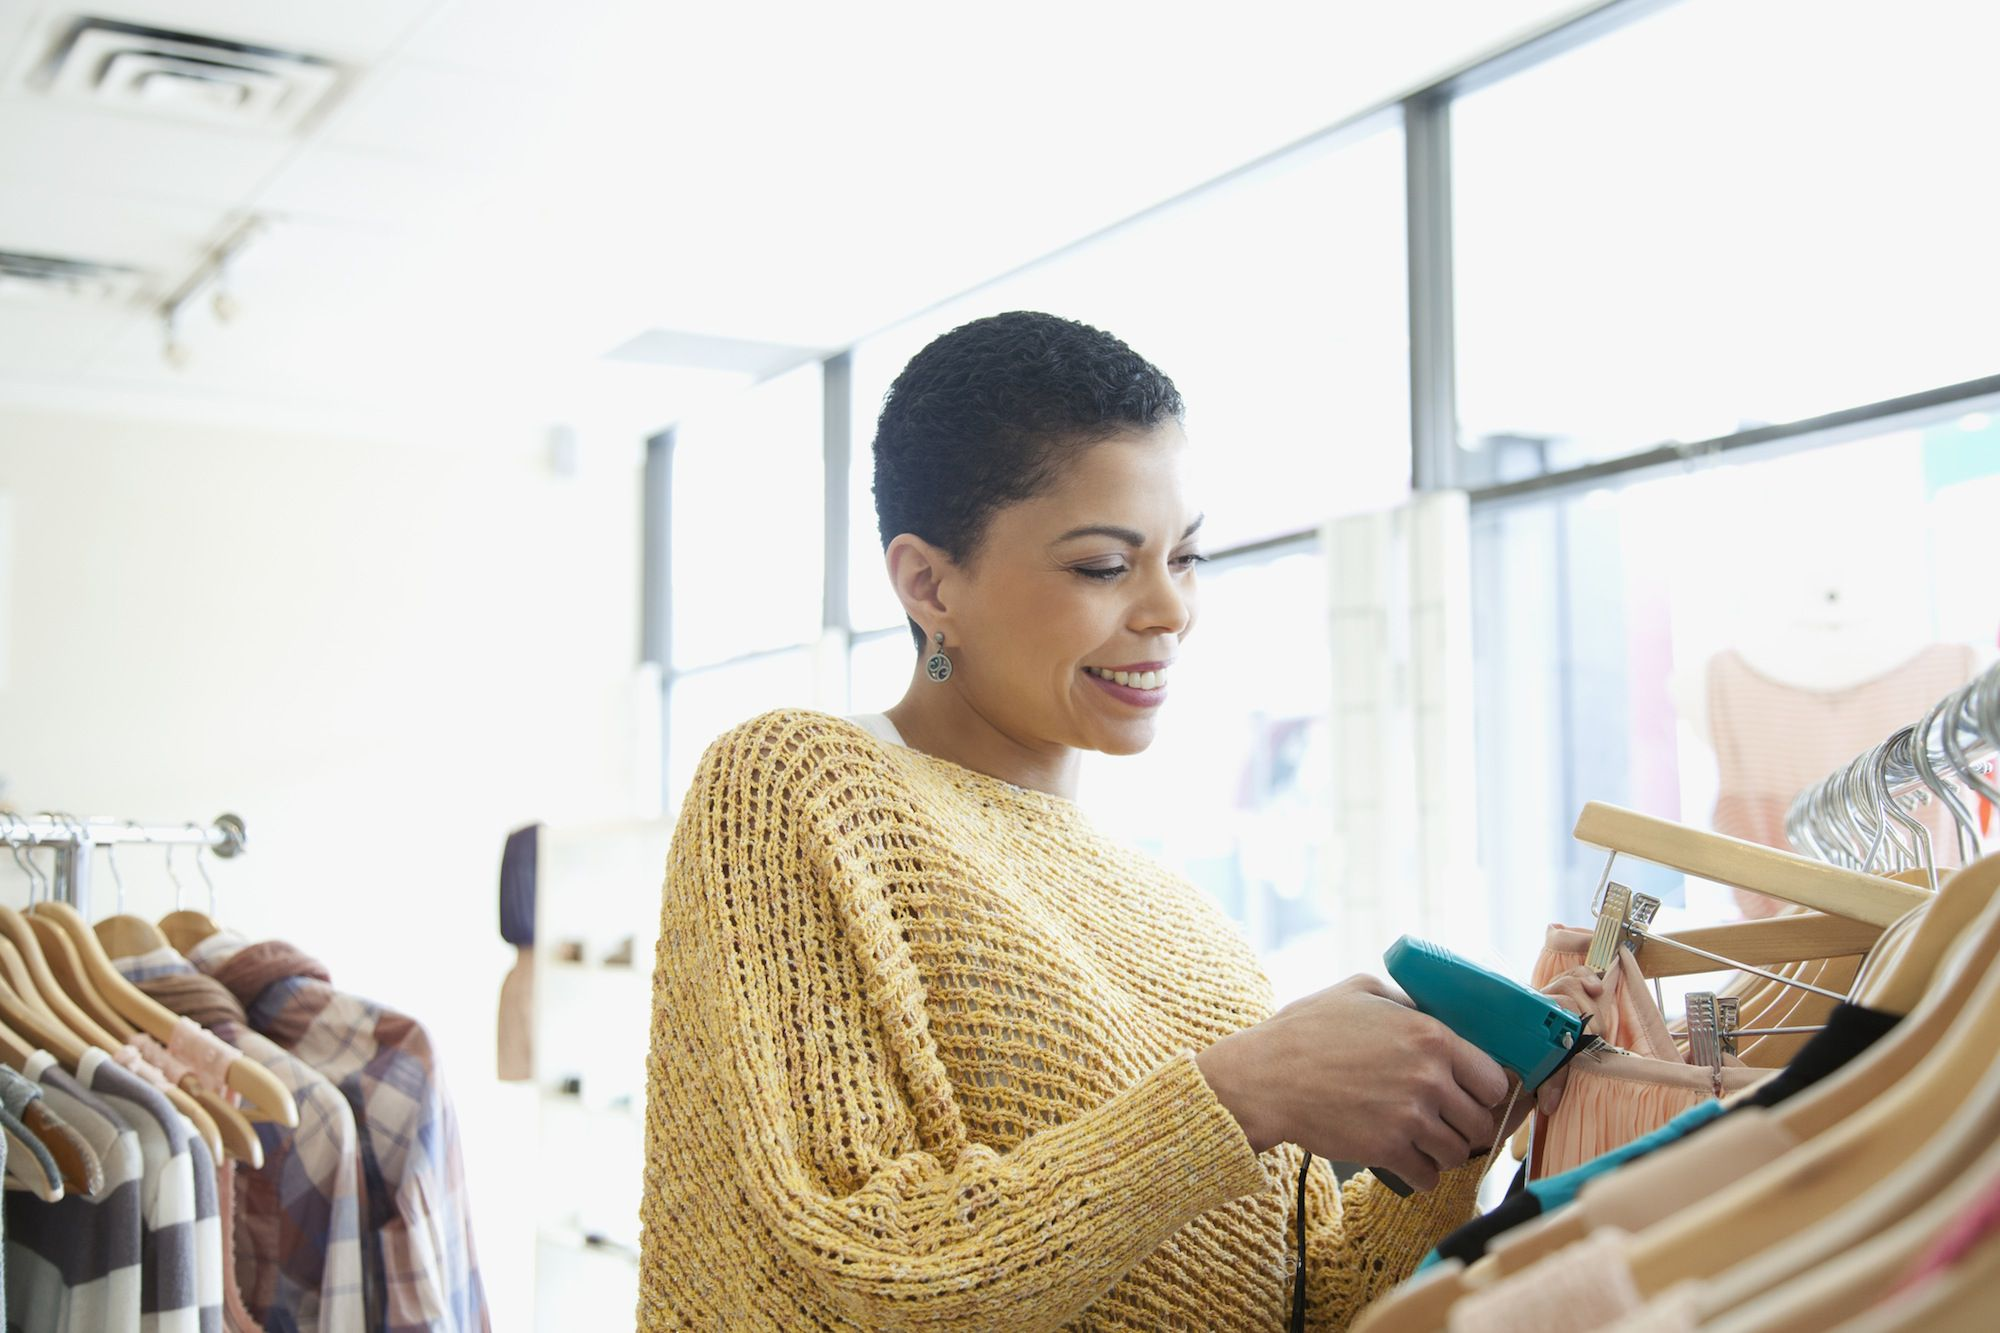 What Is MAP Pricing And What Retailers Does It Affect - Past due invoice wording women clothing stores online